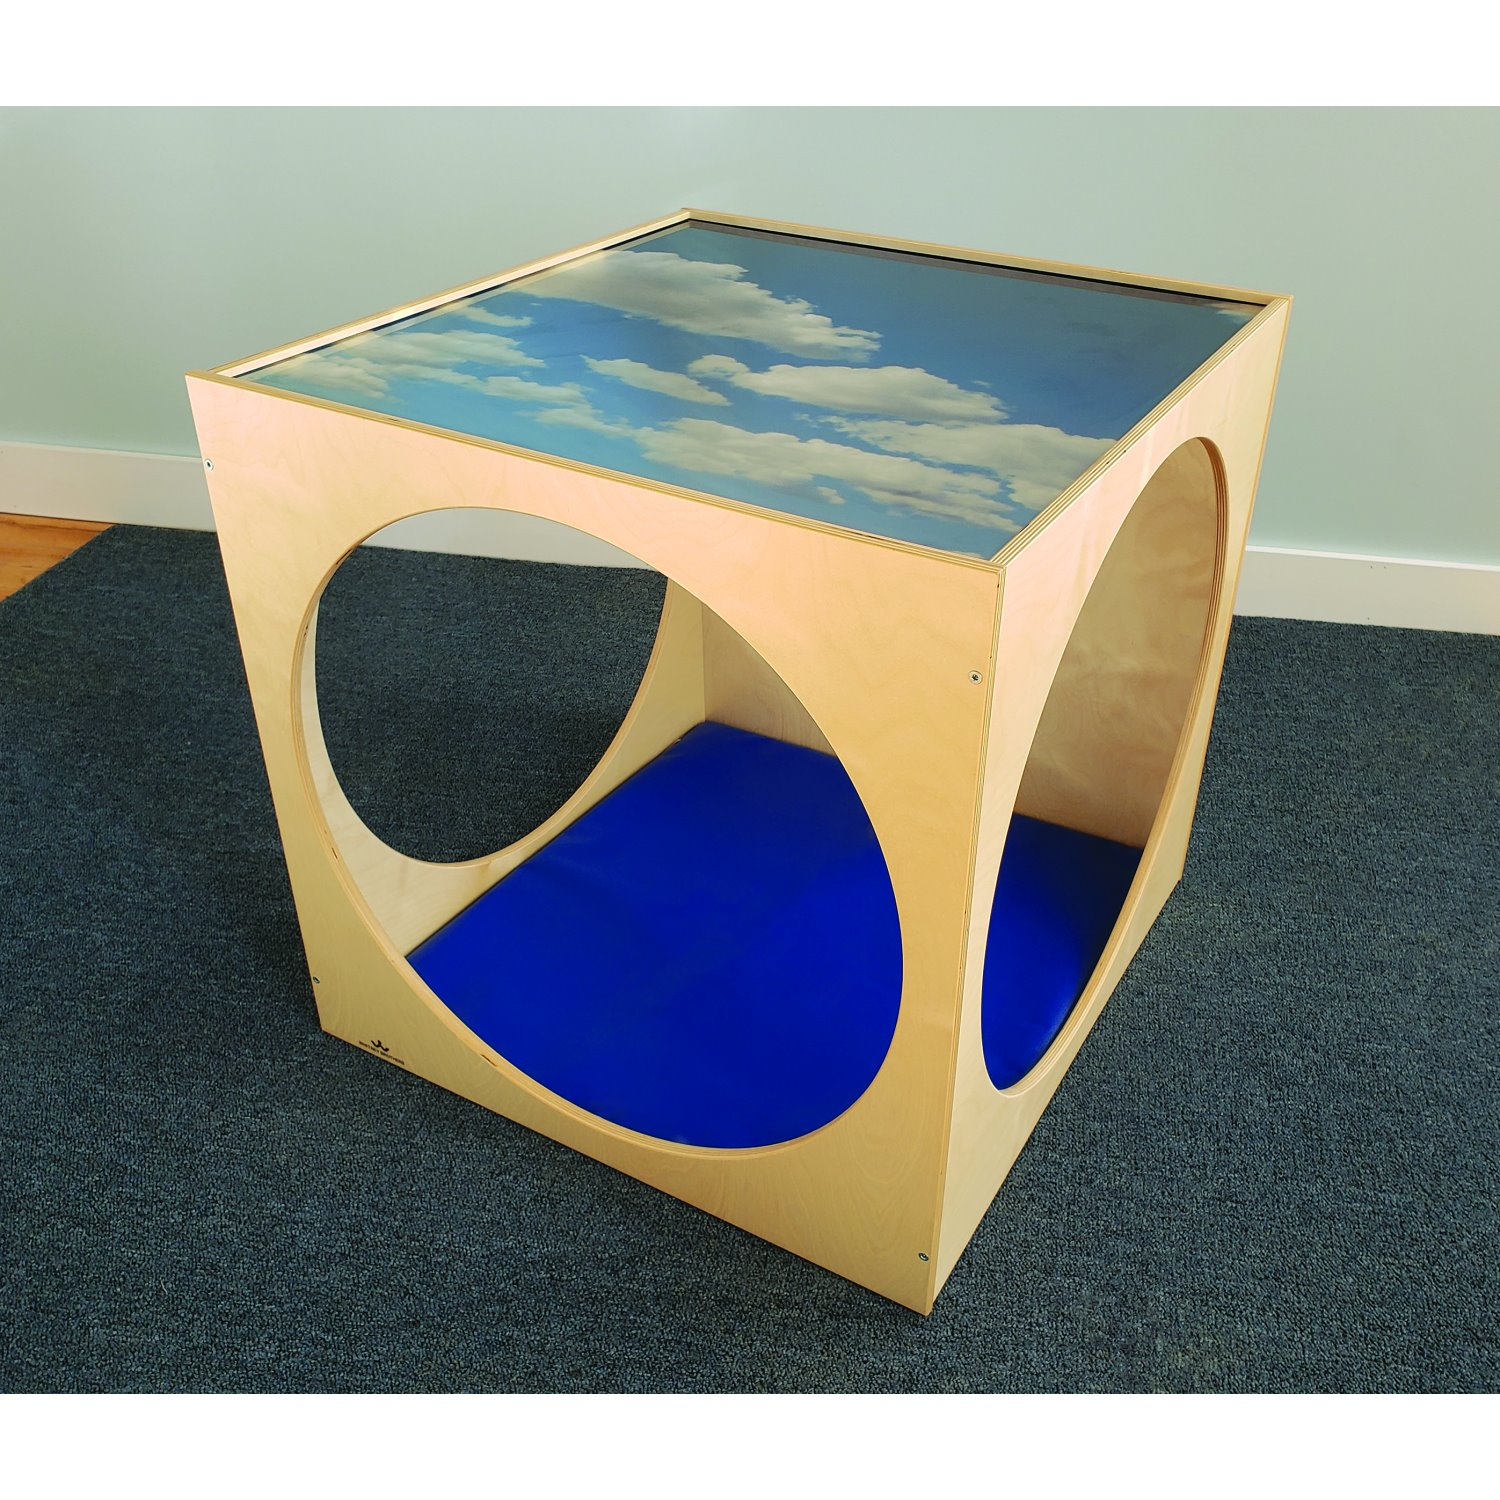 WB2122 Plexi Top Play House Cube With Floor Mat Set